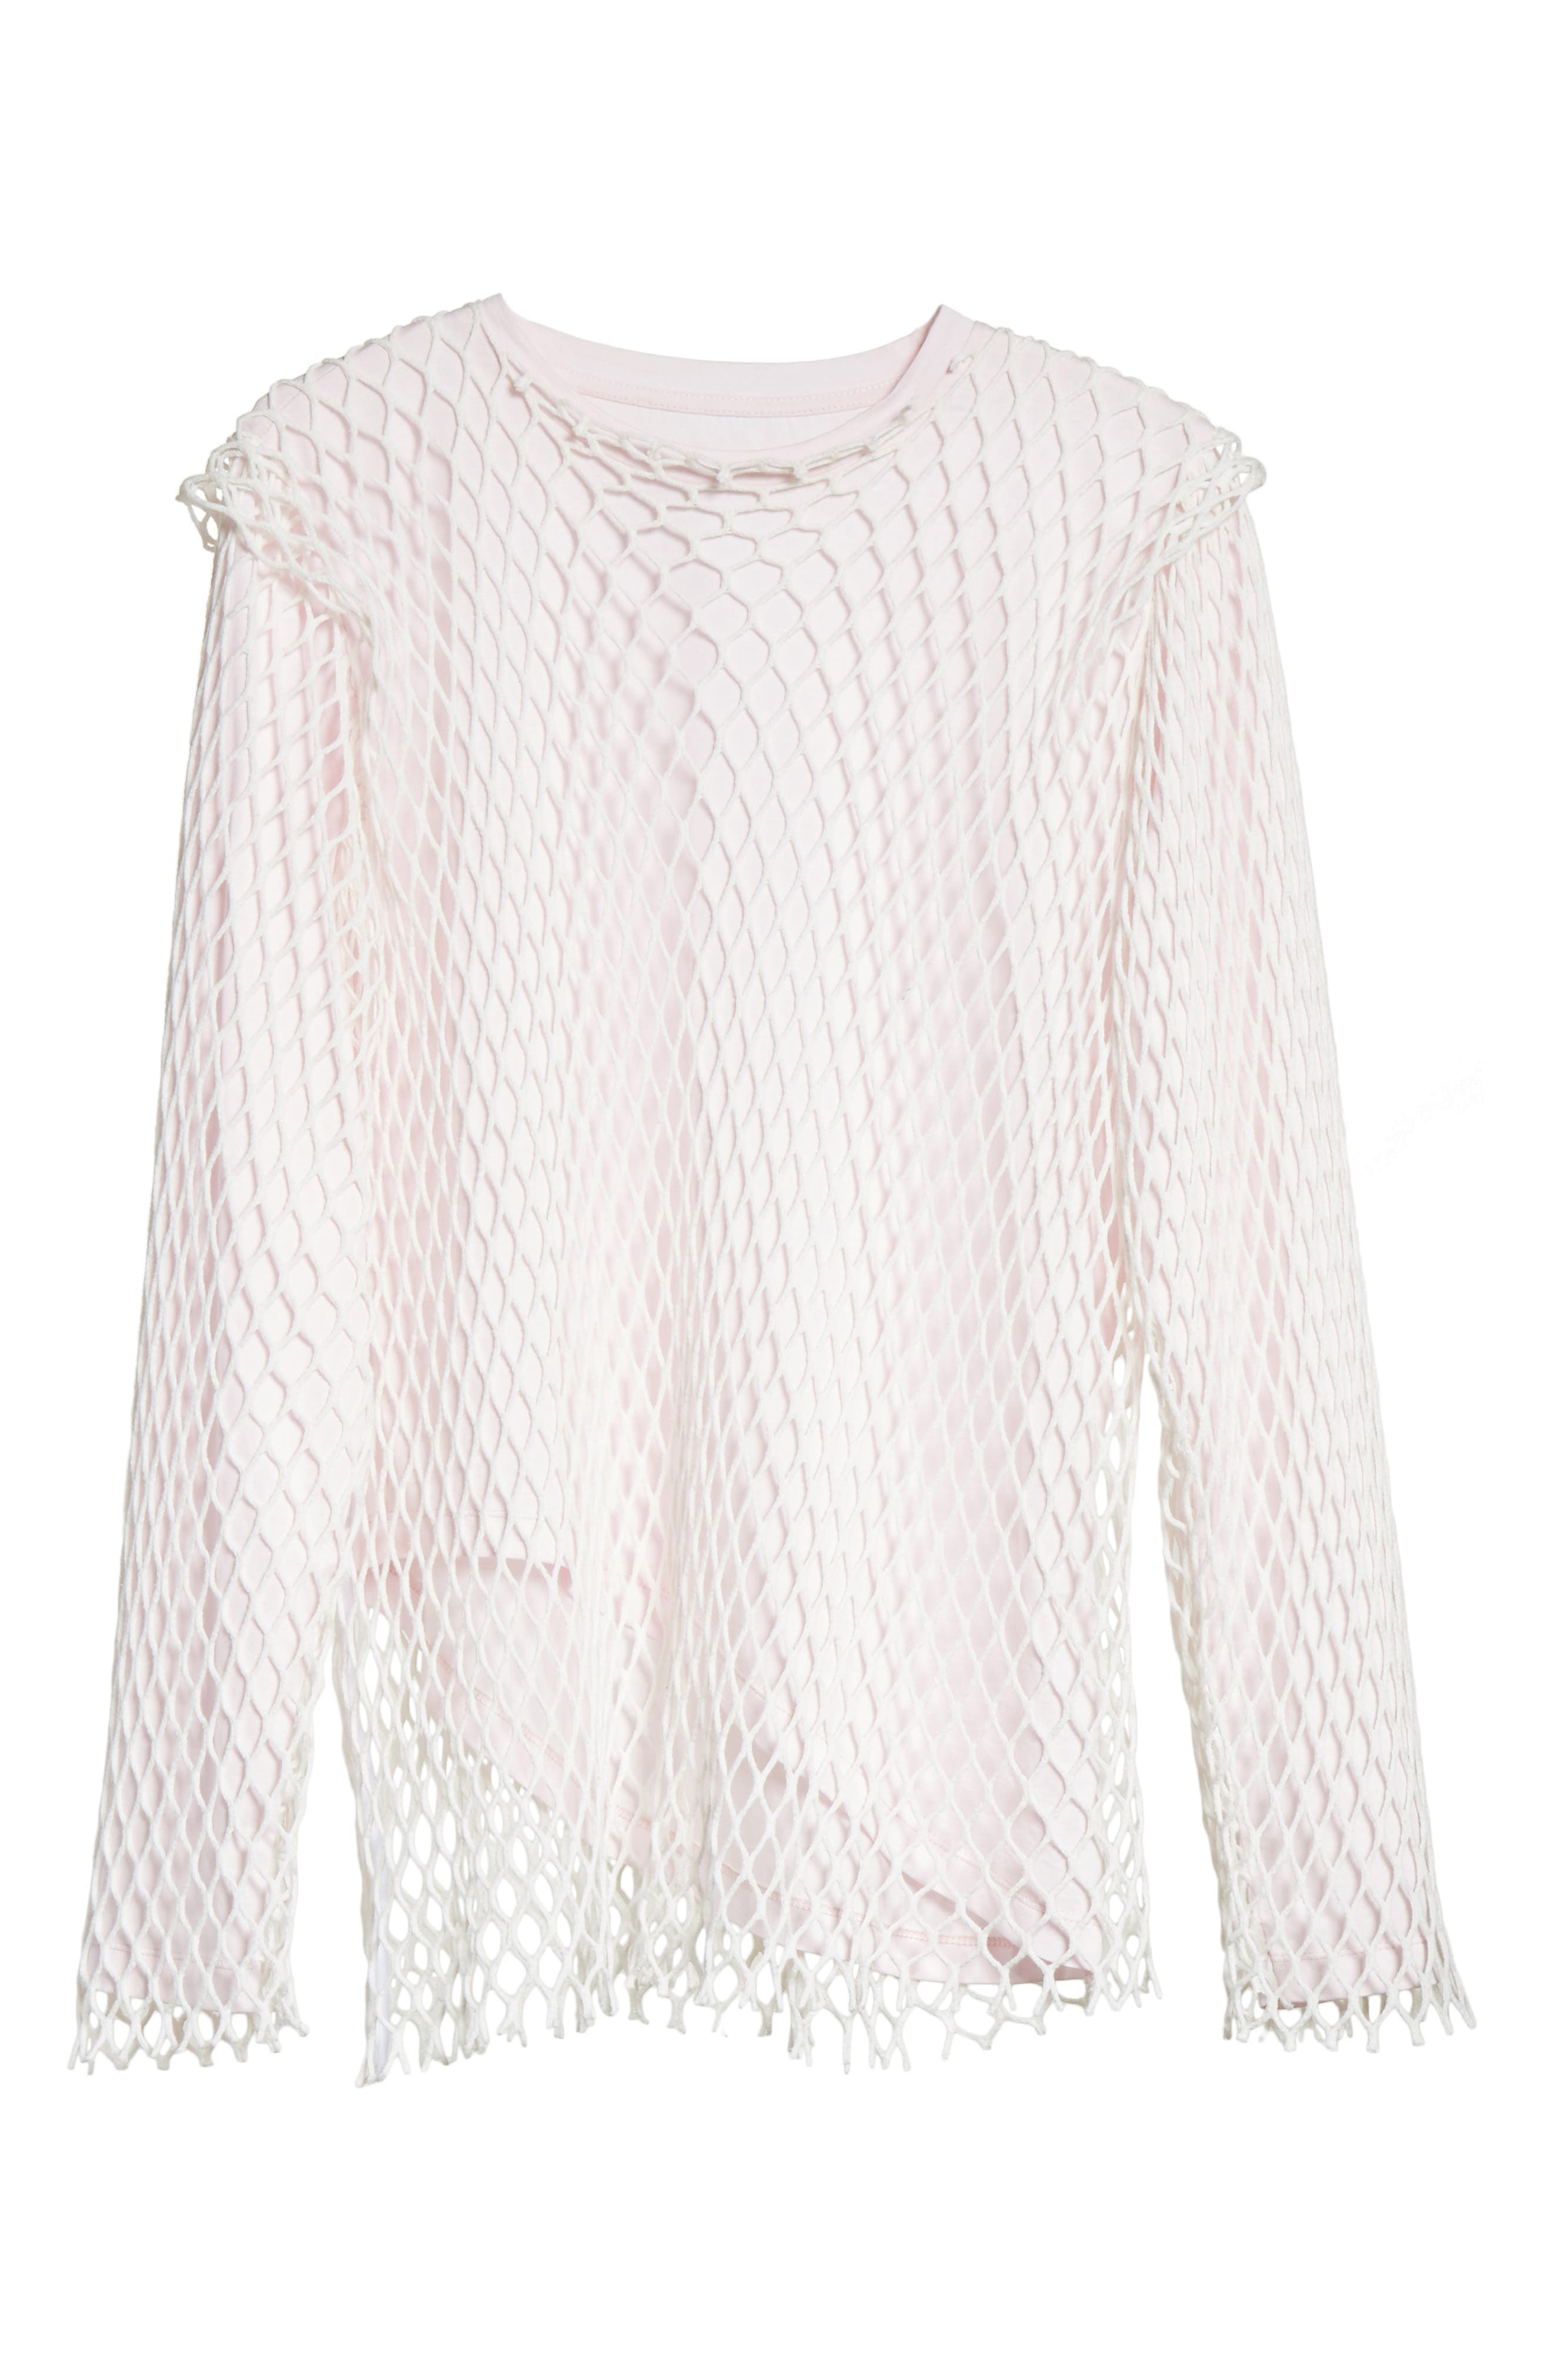 Marques'Almeida Net Jersey Top,                             Alternate thumbnail 5, color,                             Pale Pink